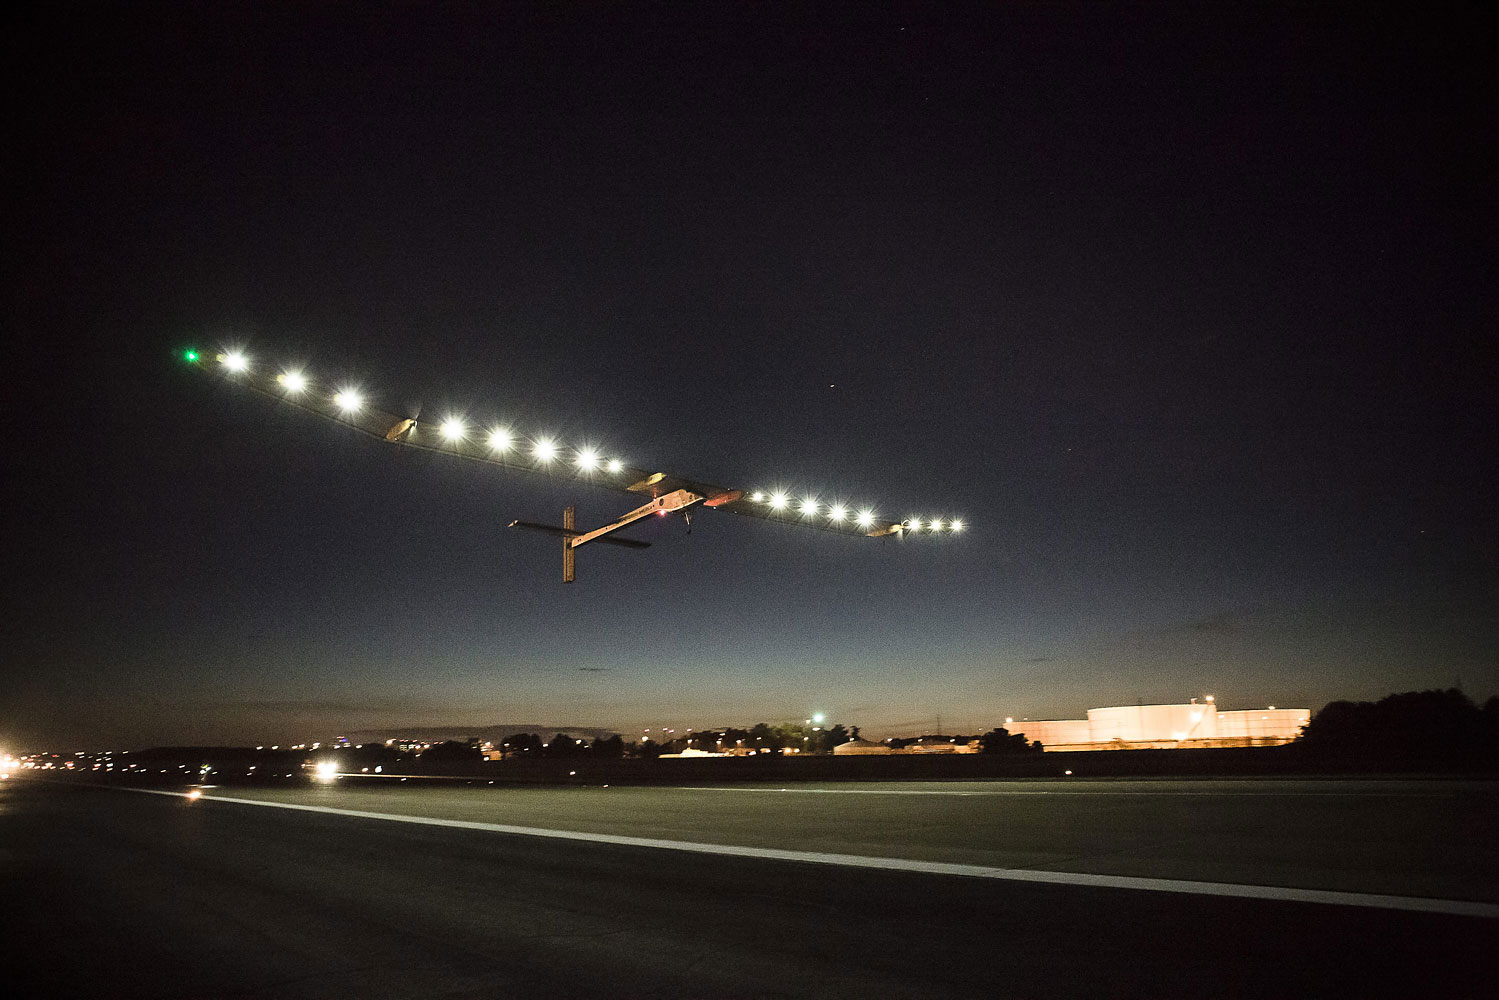 Solar Impulse takes off on its final leg of its flight across the USA from Dulles International Airport in Dulles, Va., July 6, 2013.